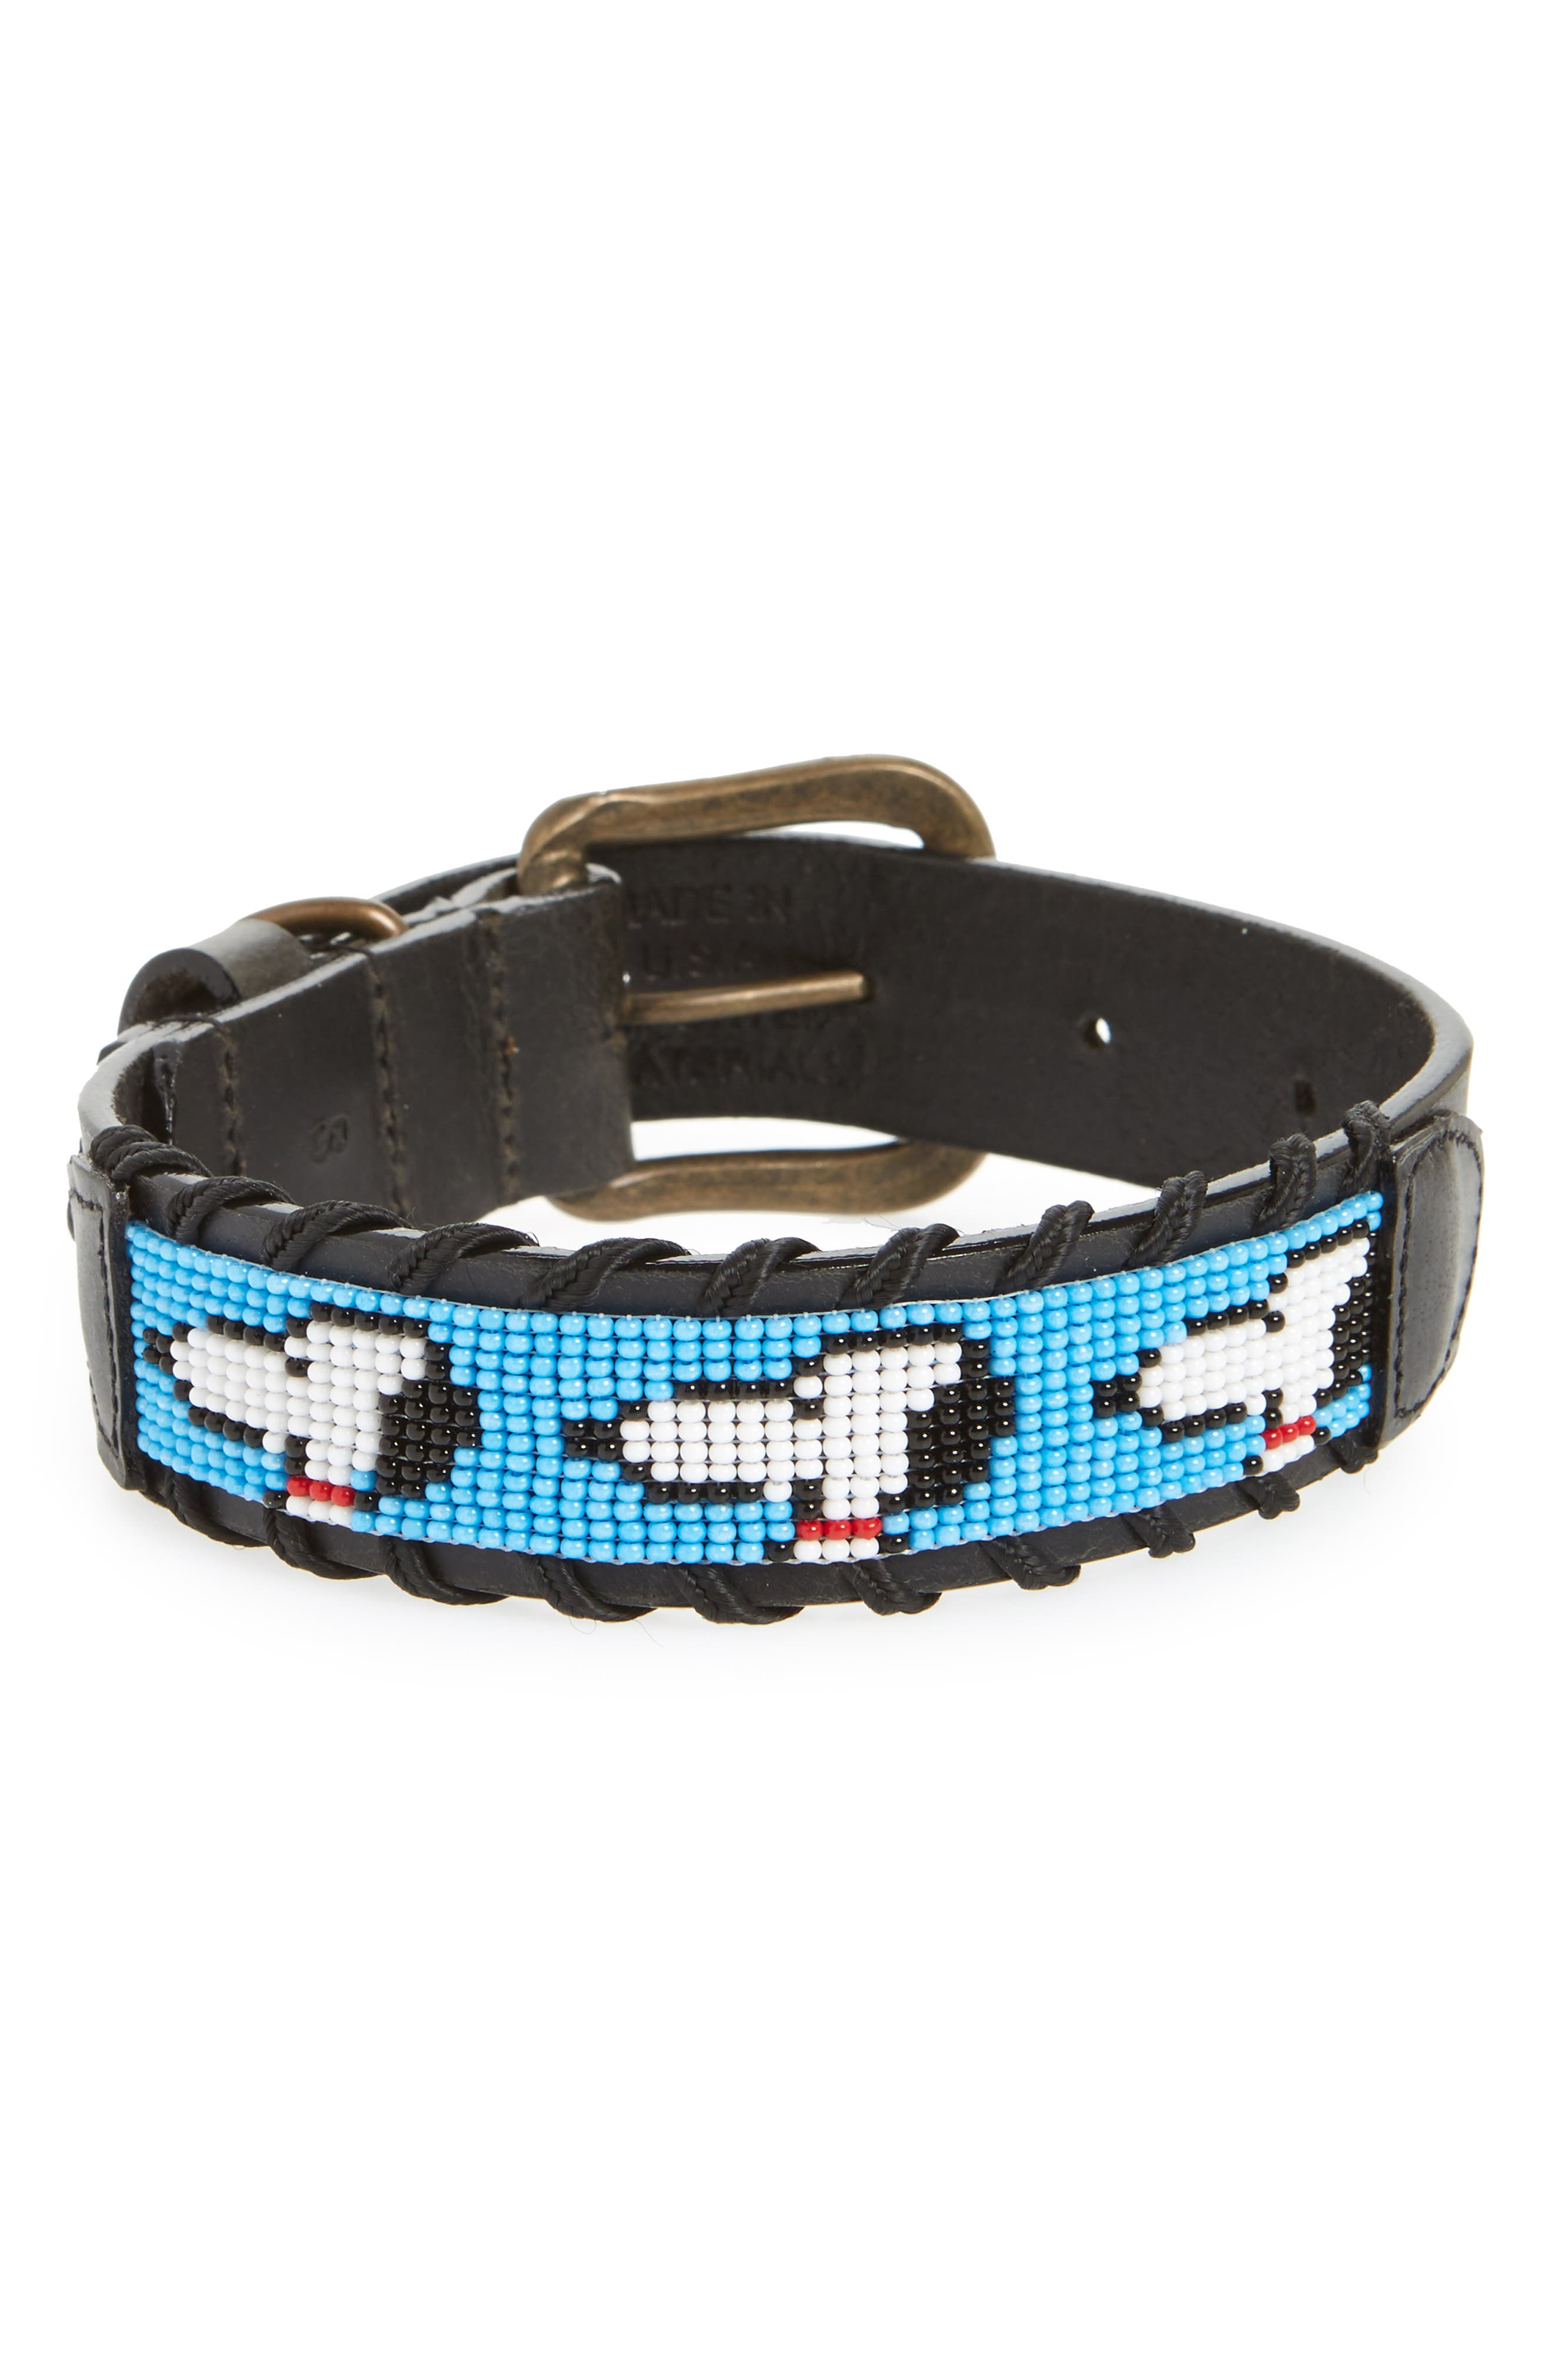 Main Image - Camp Hero Peanuts - Snoopy Silhouette Beaded Dog Collar (Limited Edition) (Nordstrom Exclusive)